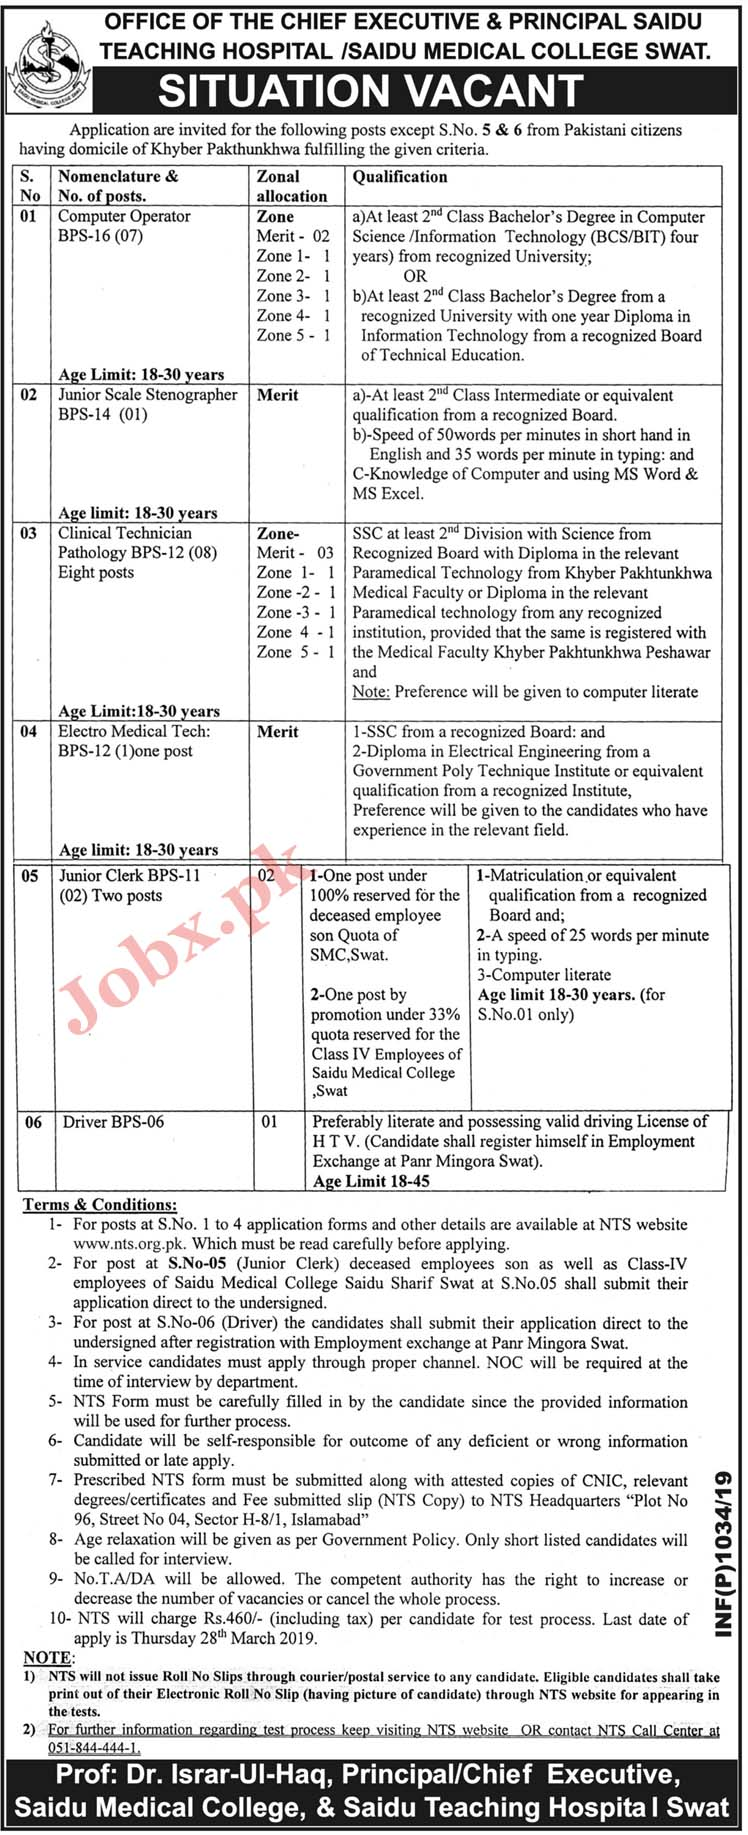 NTS Jobs in SAIDU Medical College Swat 11 March 2019